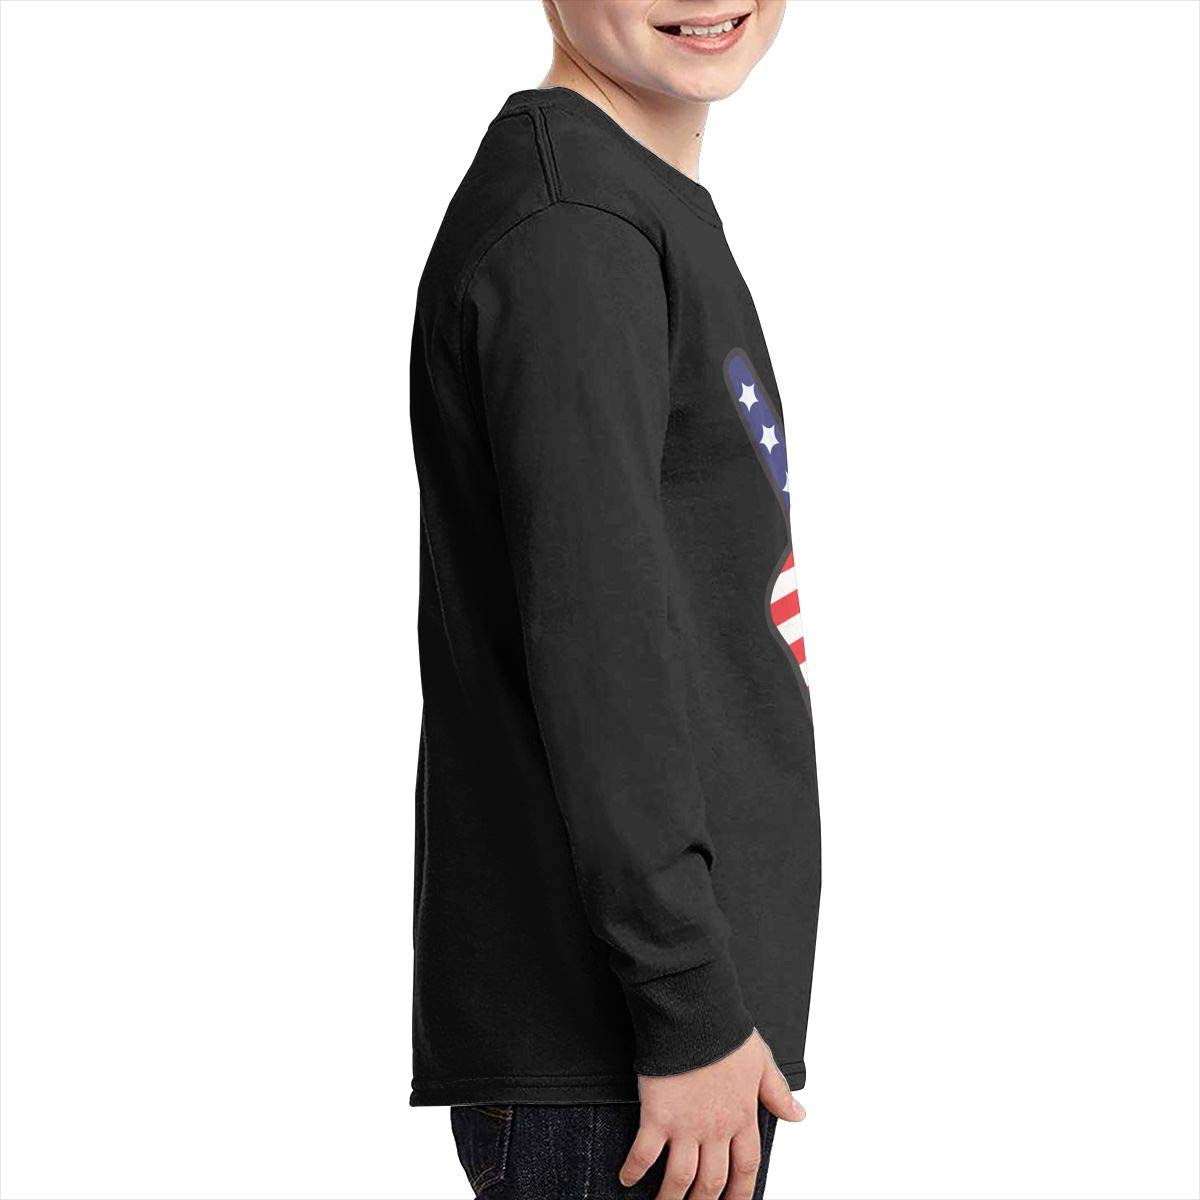 Teenagers Teen Boy Two Fingers Peace Sing Hand American Flag Printed Long Sleeve 100/% Cotton T-Shirts